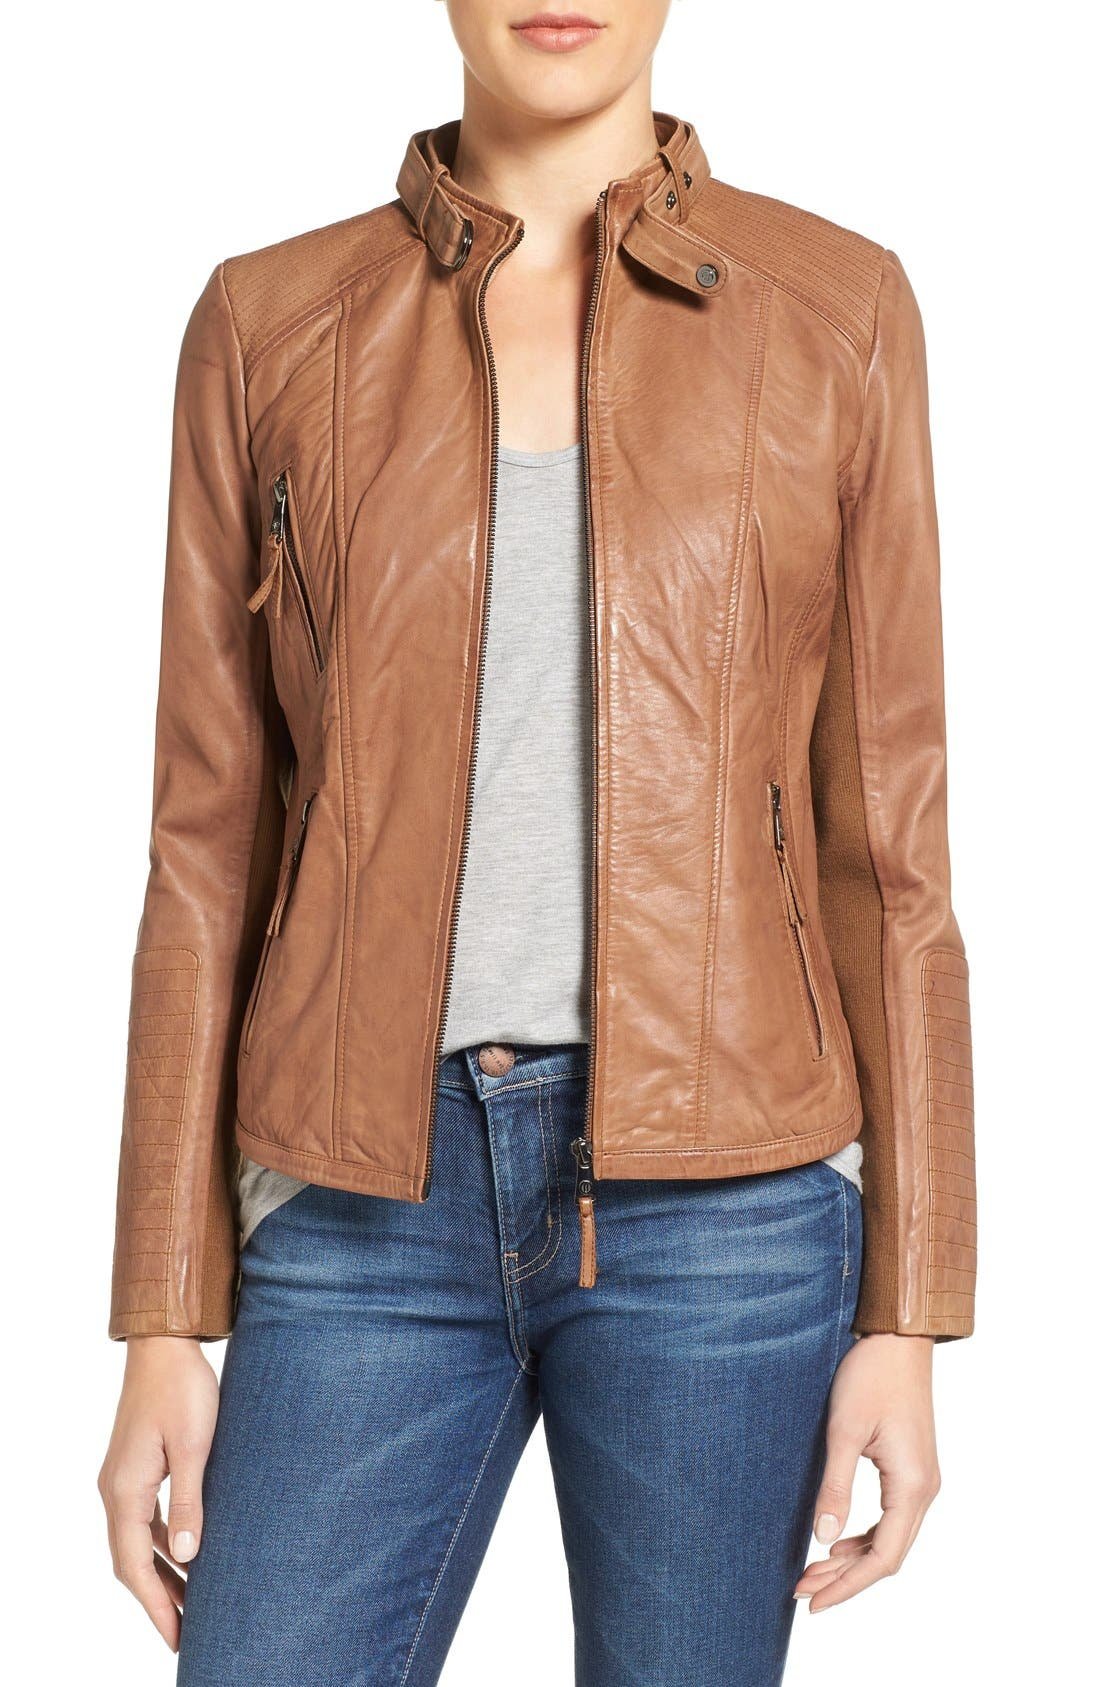 Alternate Image 1 Selected - Bernardo Zip Front Leather Biker Jacket (Regular & Petite)